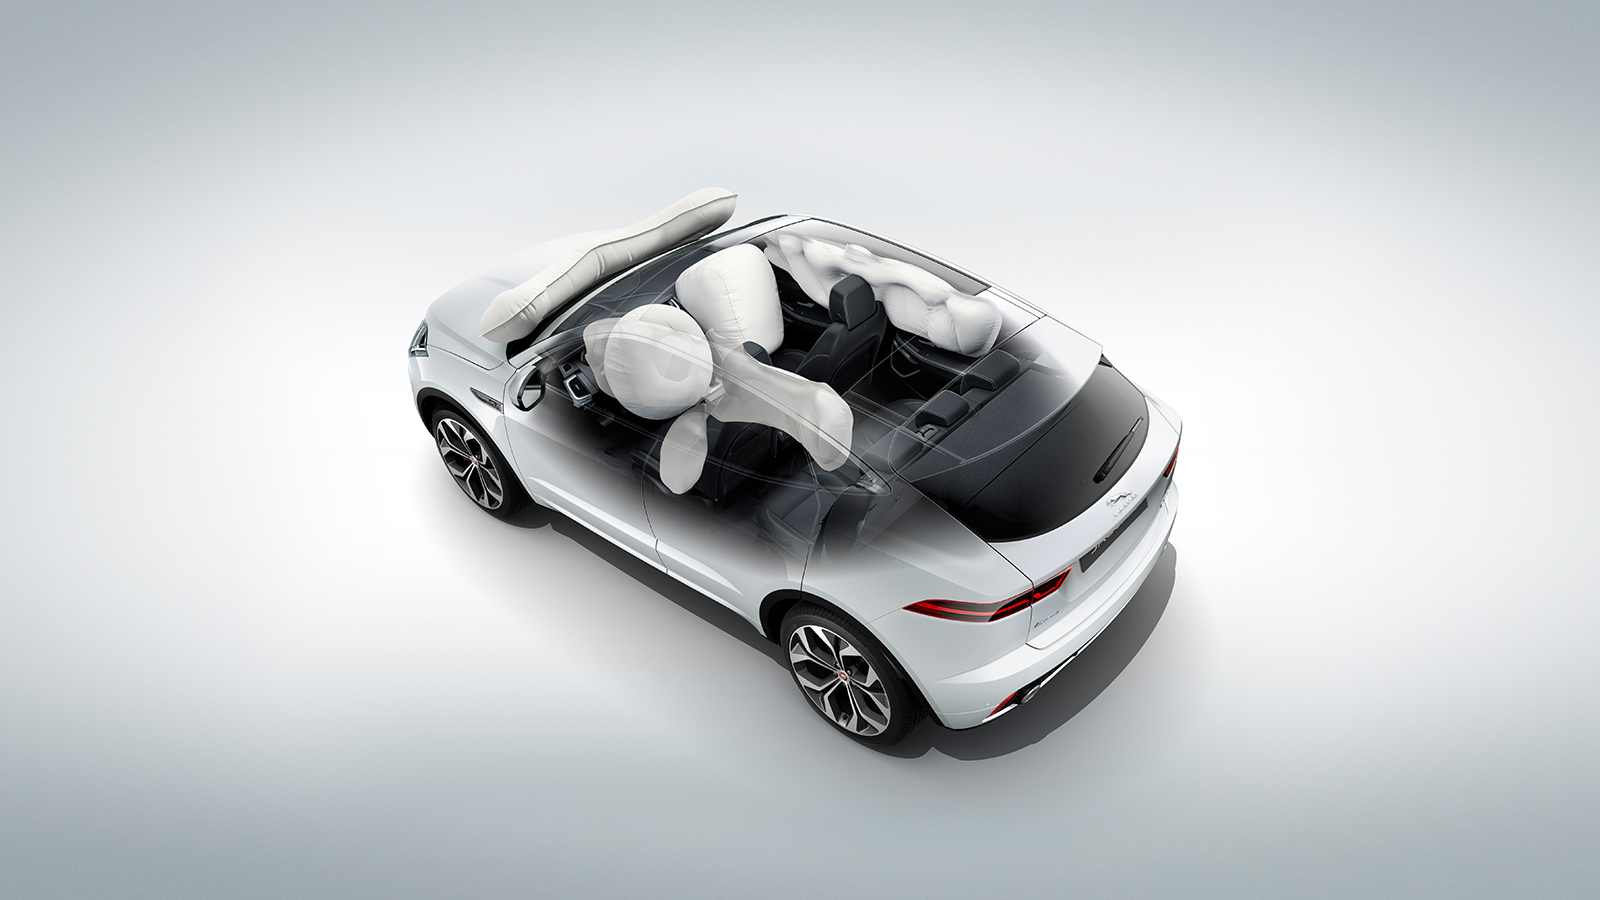 Transparent view of the Jaguar E-Pace's airbag deploy points, including the pedestrian on the windscreen.